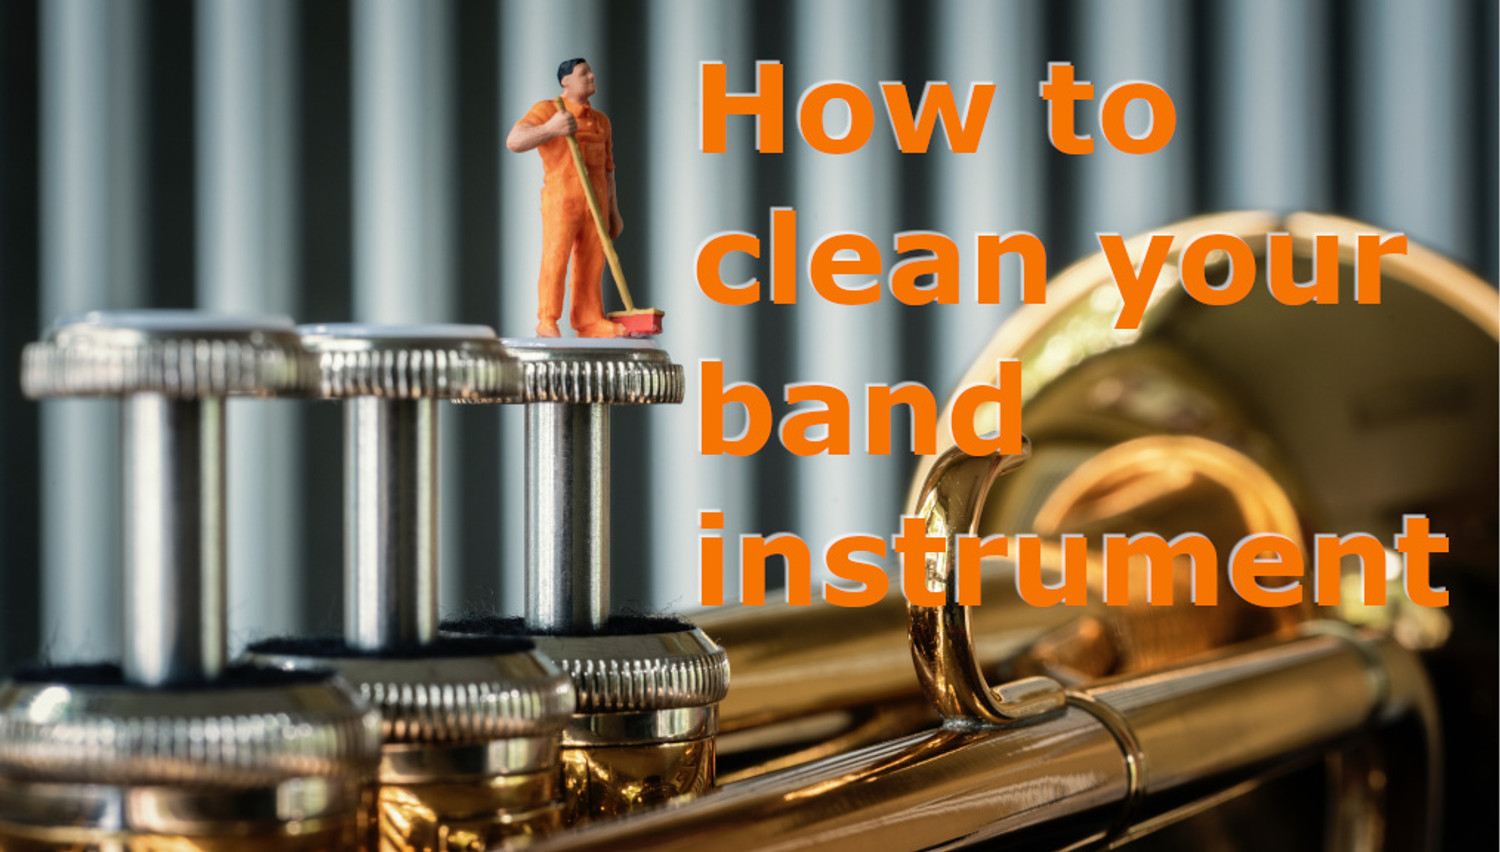 What you need to know about cleaning your band instrument